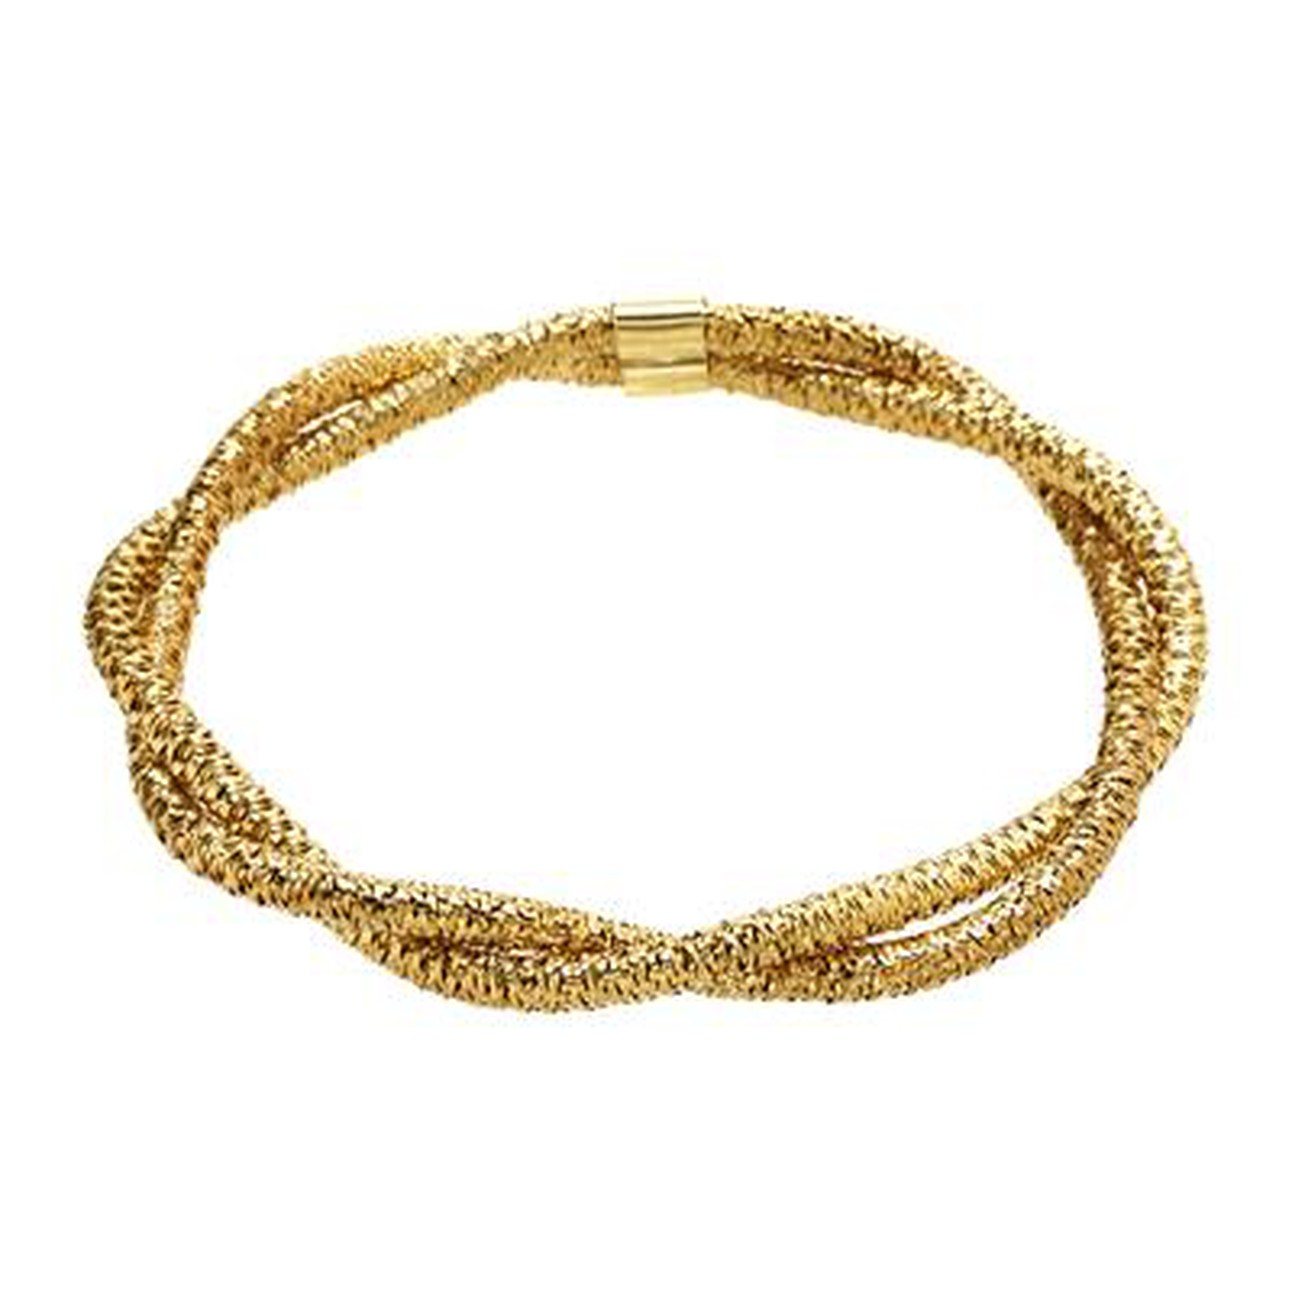 1a36694bd17 Italian Brand Bracelet in 14K Gold-Plated Over 925 Sterling Silver